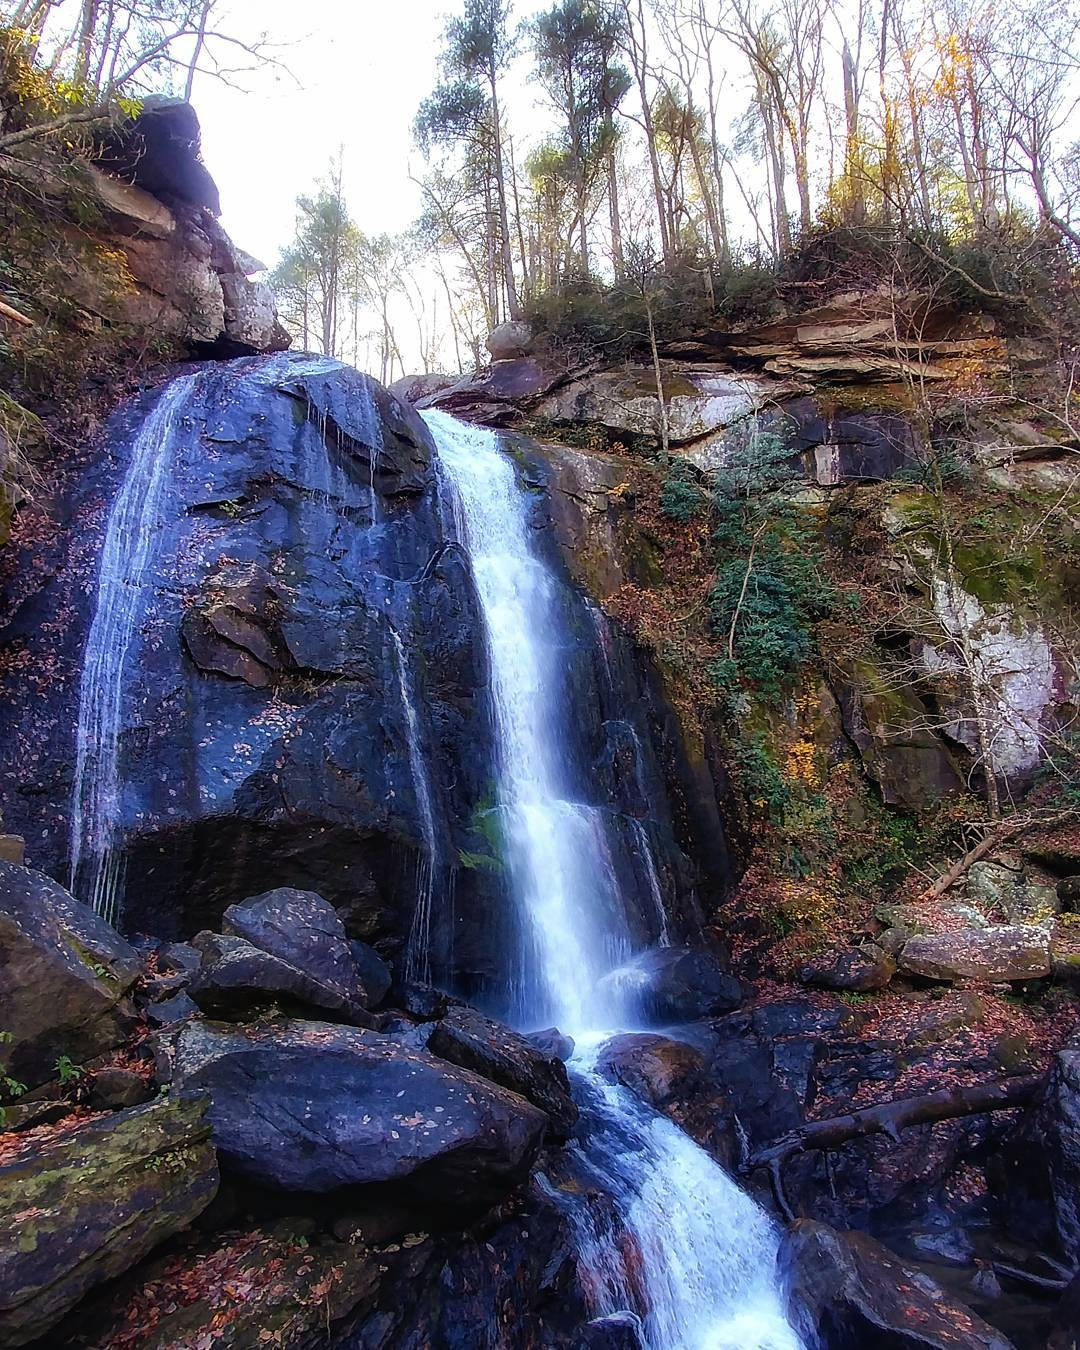 Asheville Hikes - High Shoals Falls - Original Photo